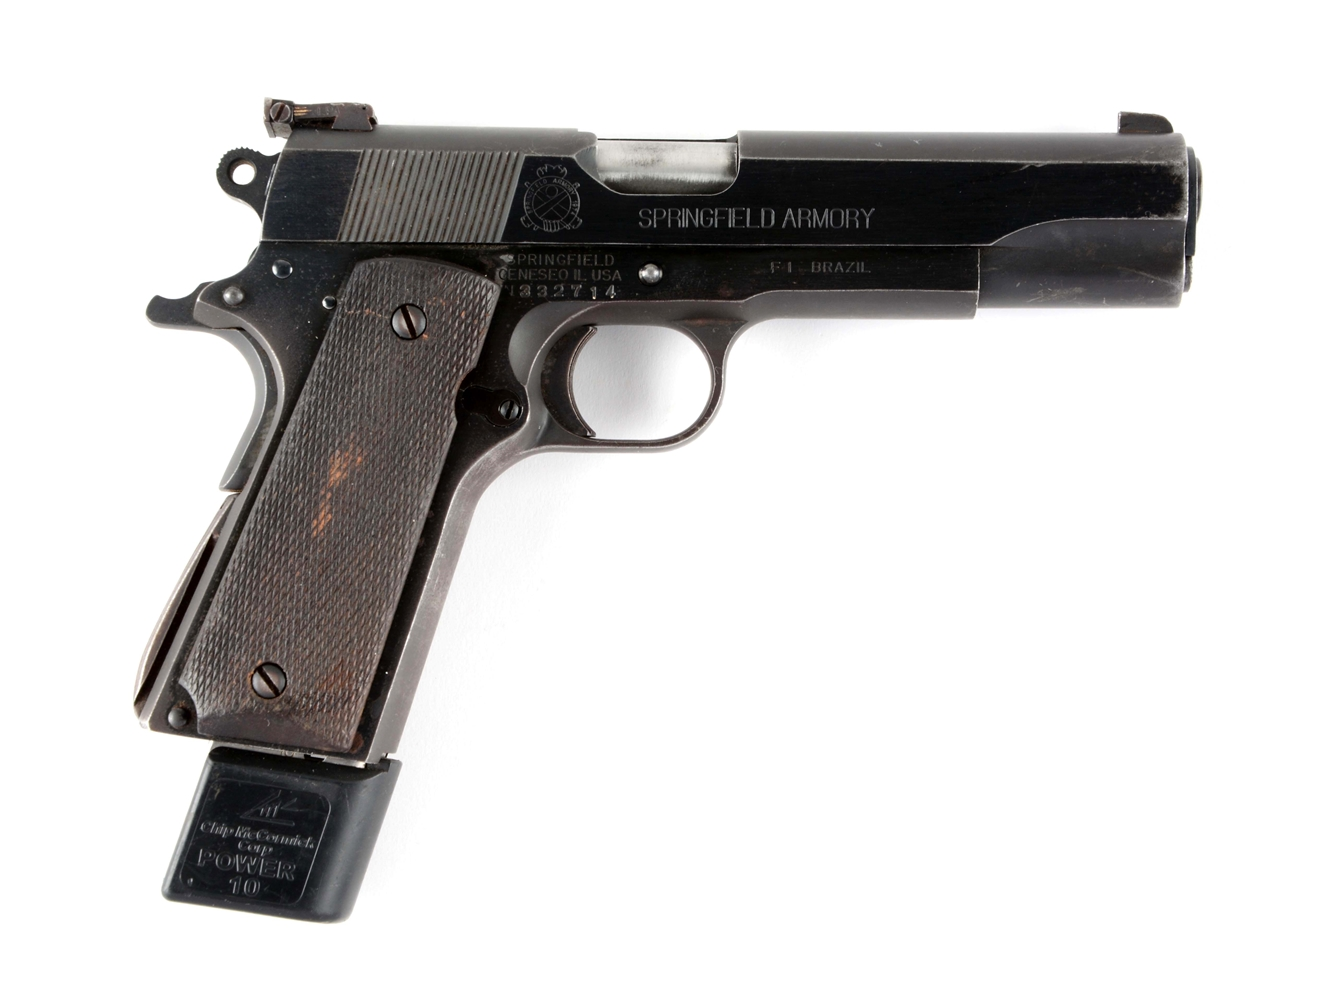 (M) Springfield Model 1911-A1 Semi-Automatic Pistol.